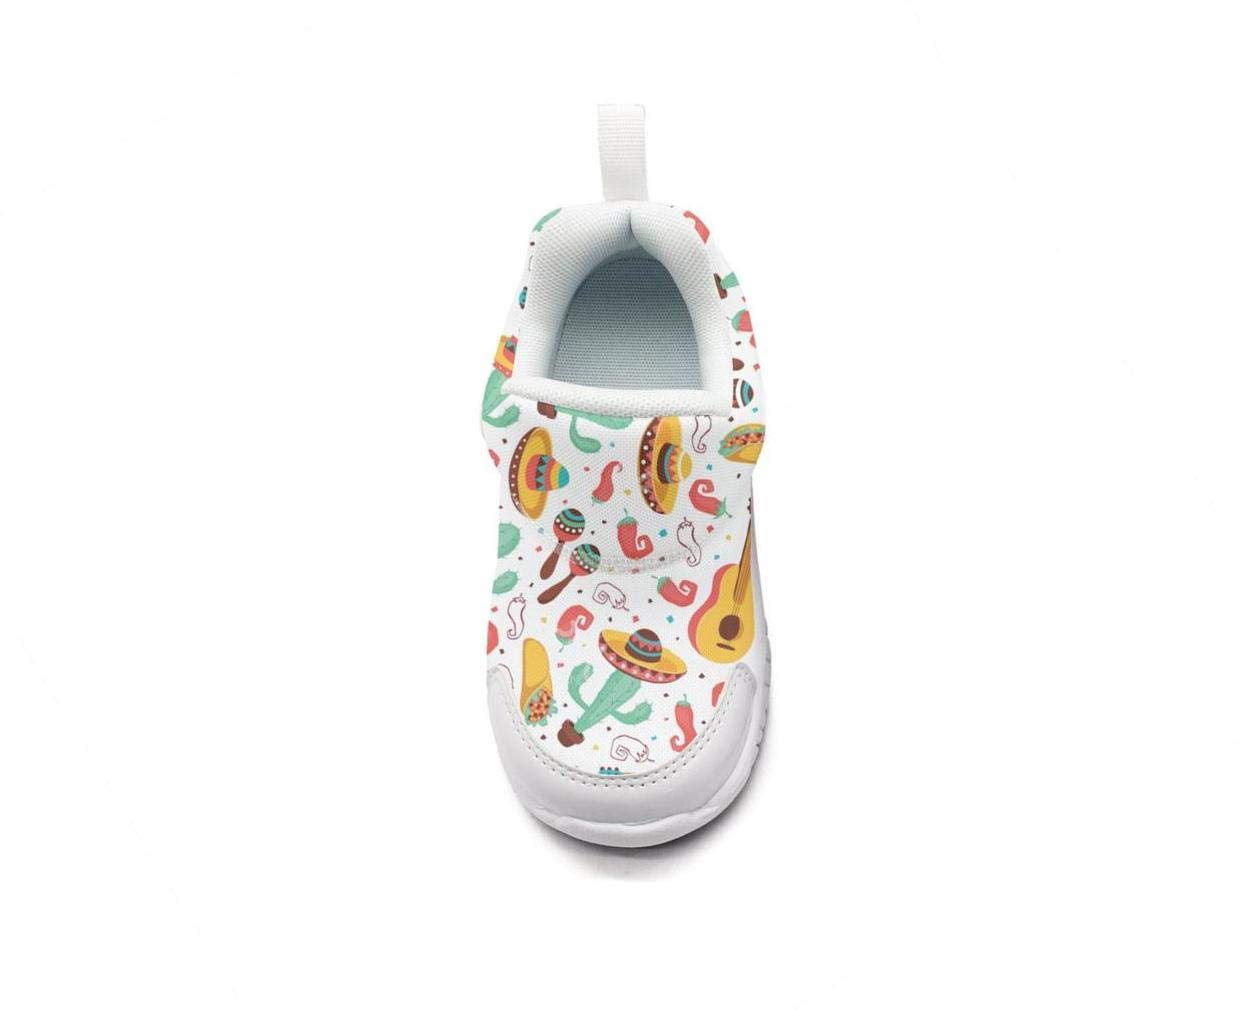 ONEYUAN Children Cinco de Mayo Miami and South Florida Kid Casual Lightweight Sport Shoes Sneakers Walking Athletic Shoes